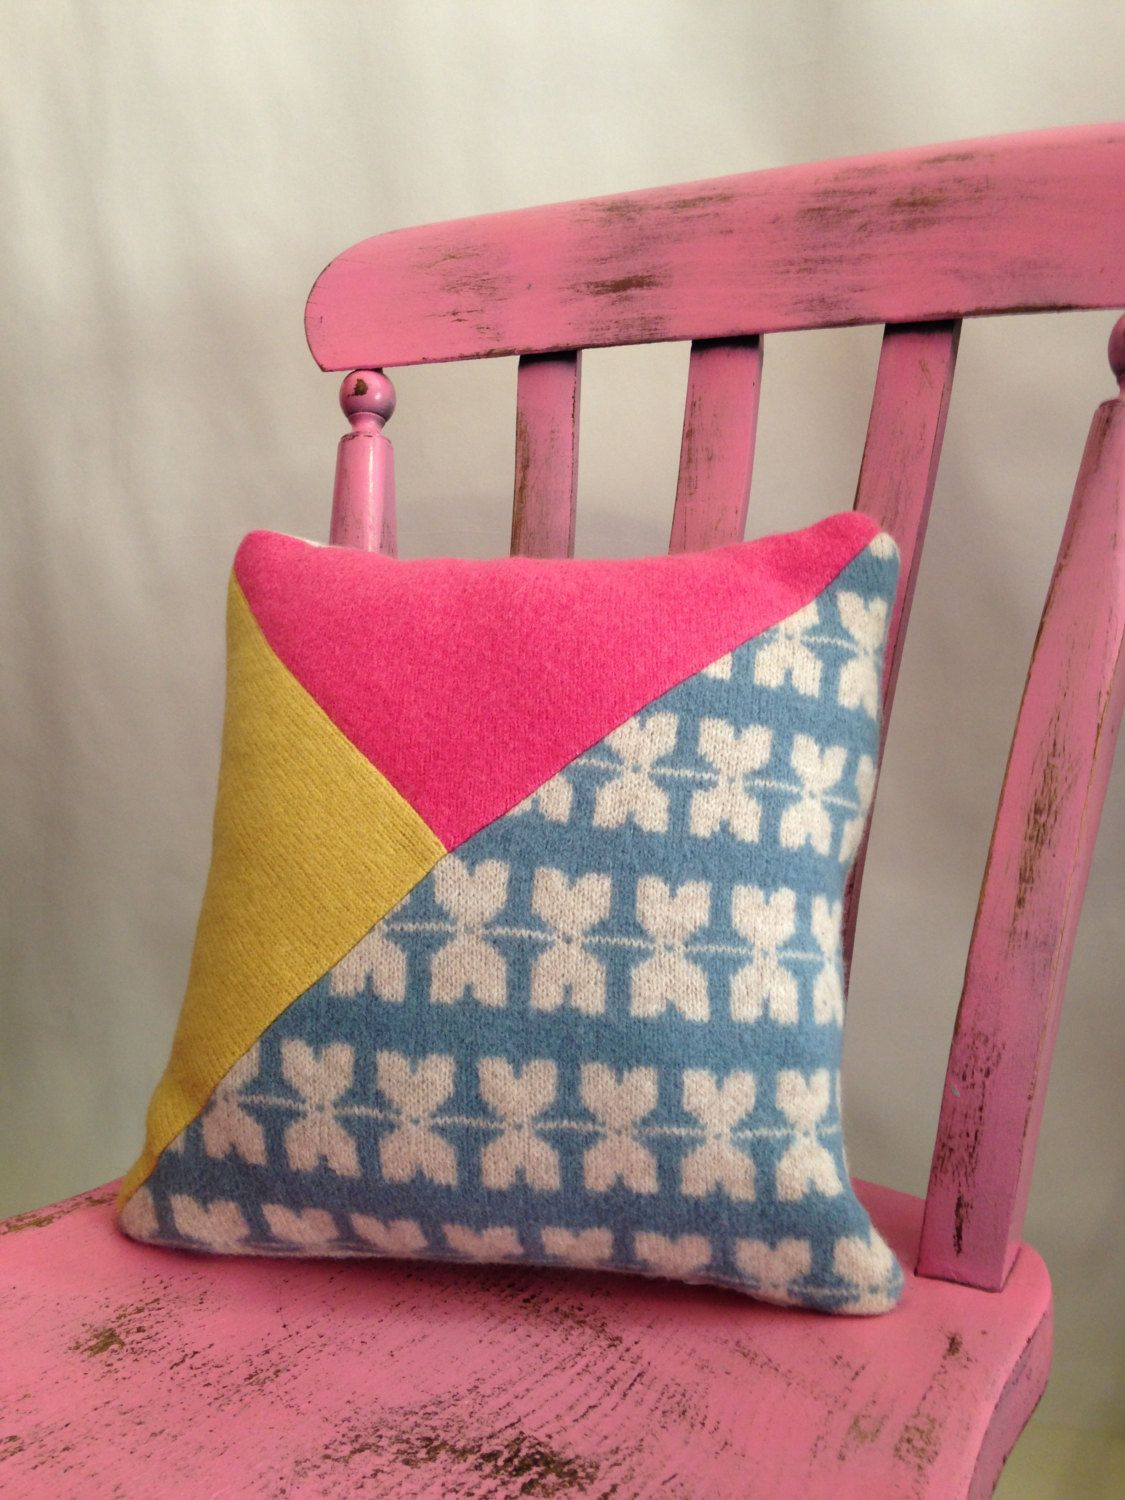 KITES Modern Appliqué Knitted Cushion, sofa pillow machine embroidered wool, pink, linen, blue, yellow by SuzieLeeKnitwear on Etsy